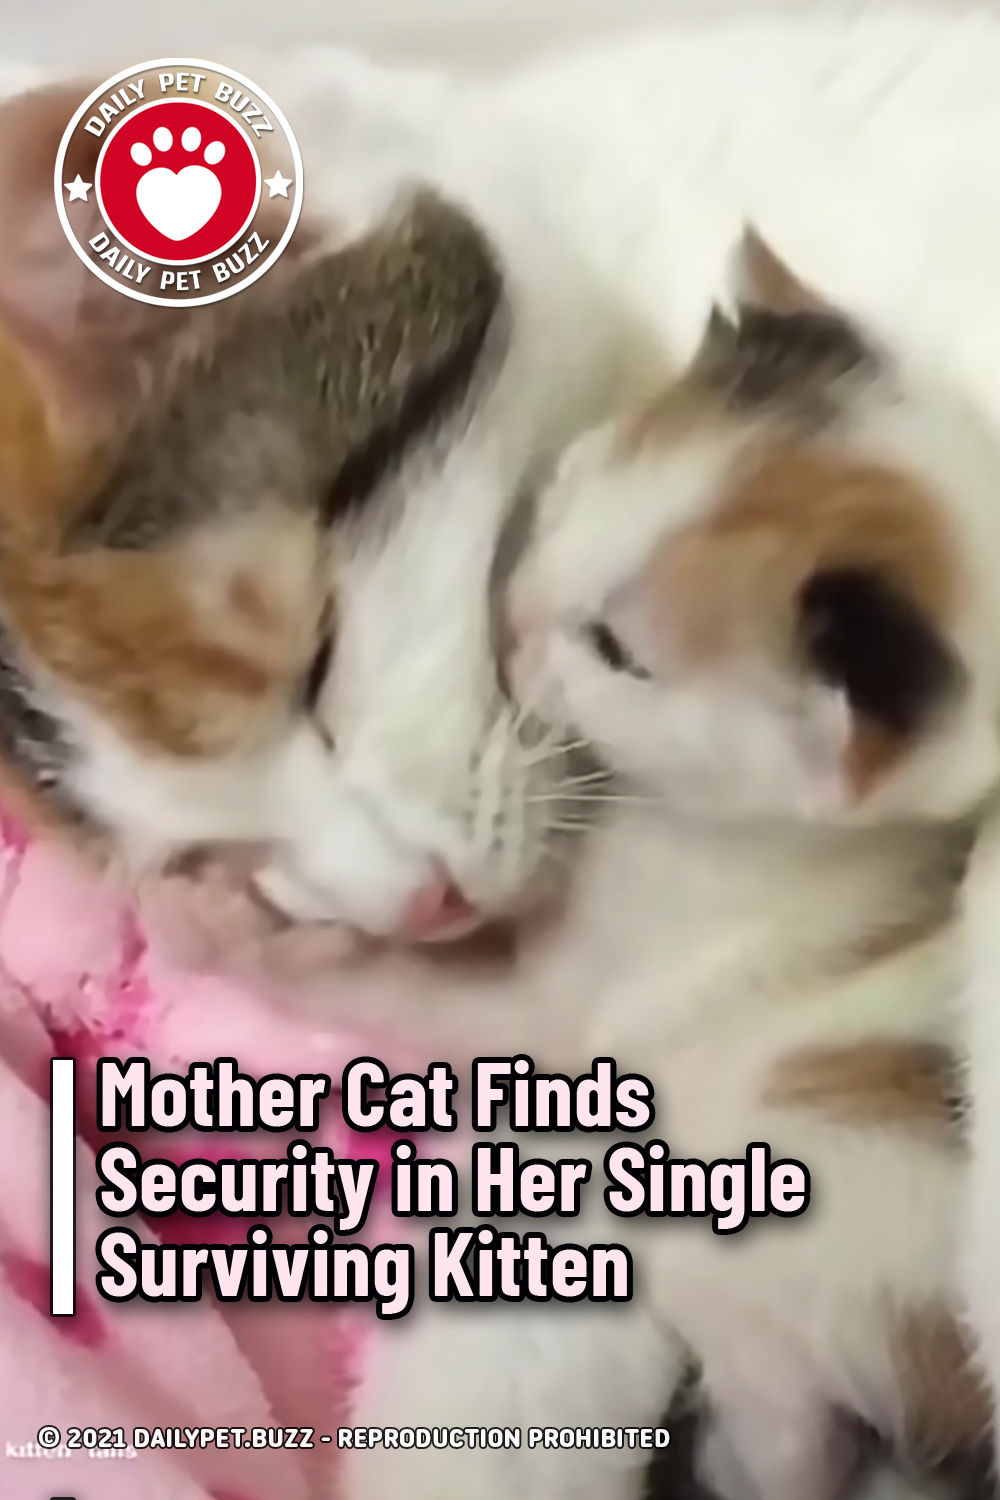 Mother Cat Finds Security in Her Single Surviving Kitten